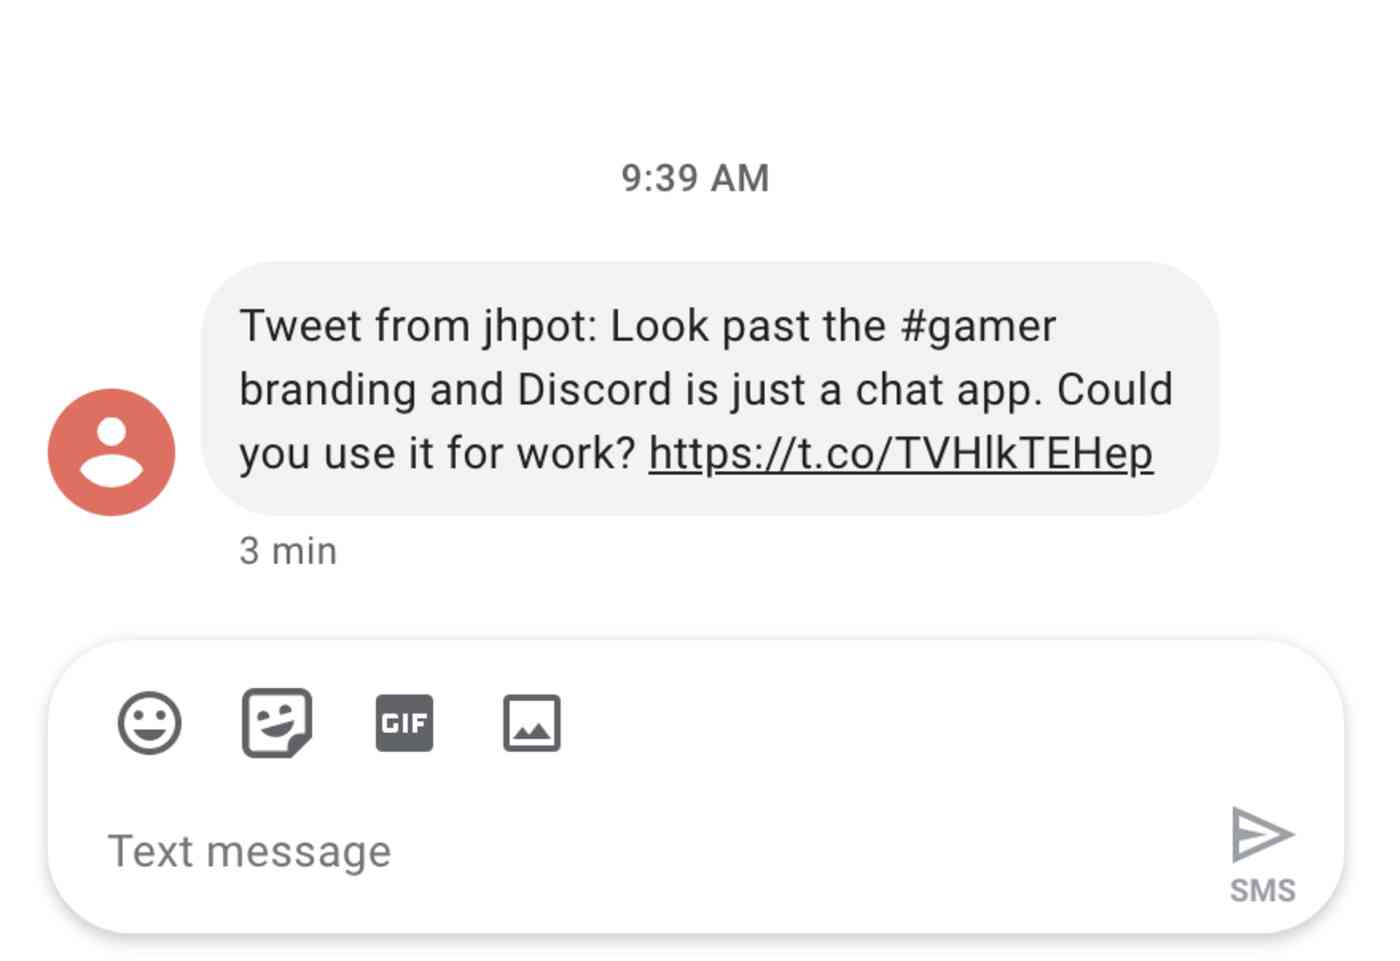 A Twitter SMS notification sent by Zapier